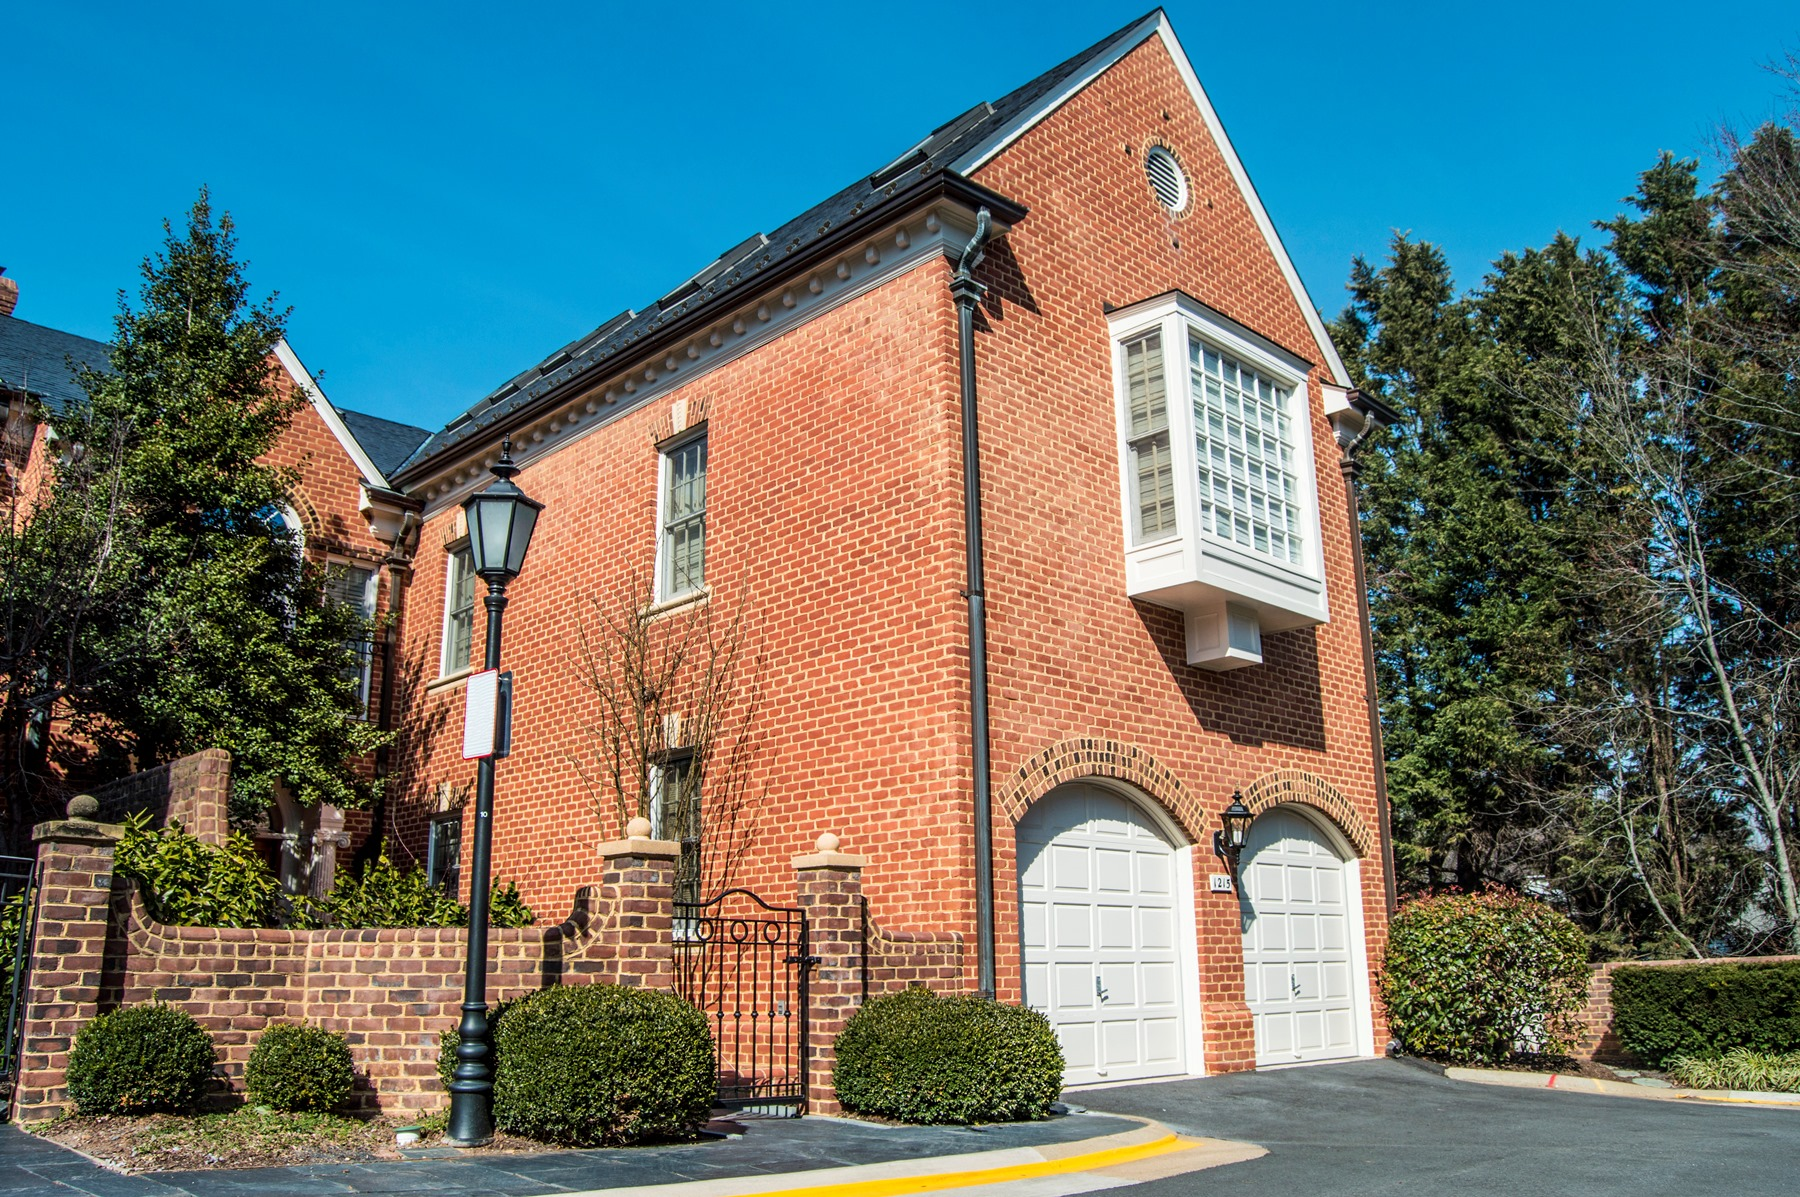 Townhouse for Sale at 1215 Stuart Robeson Drive, Mclean McLean, Virginia, 22101 United States